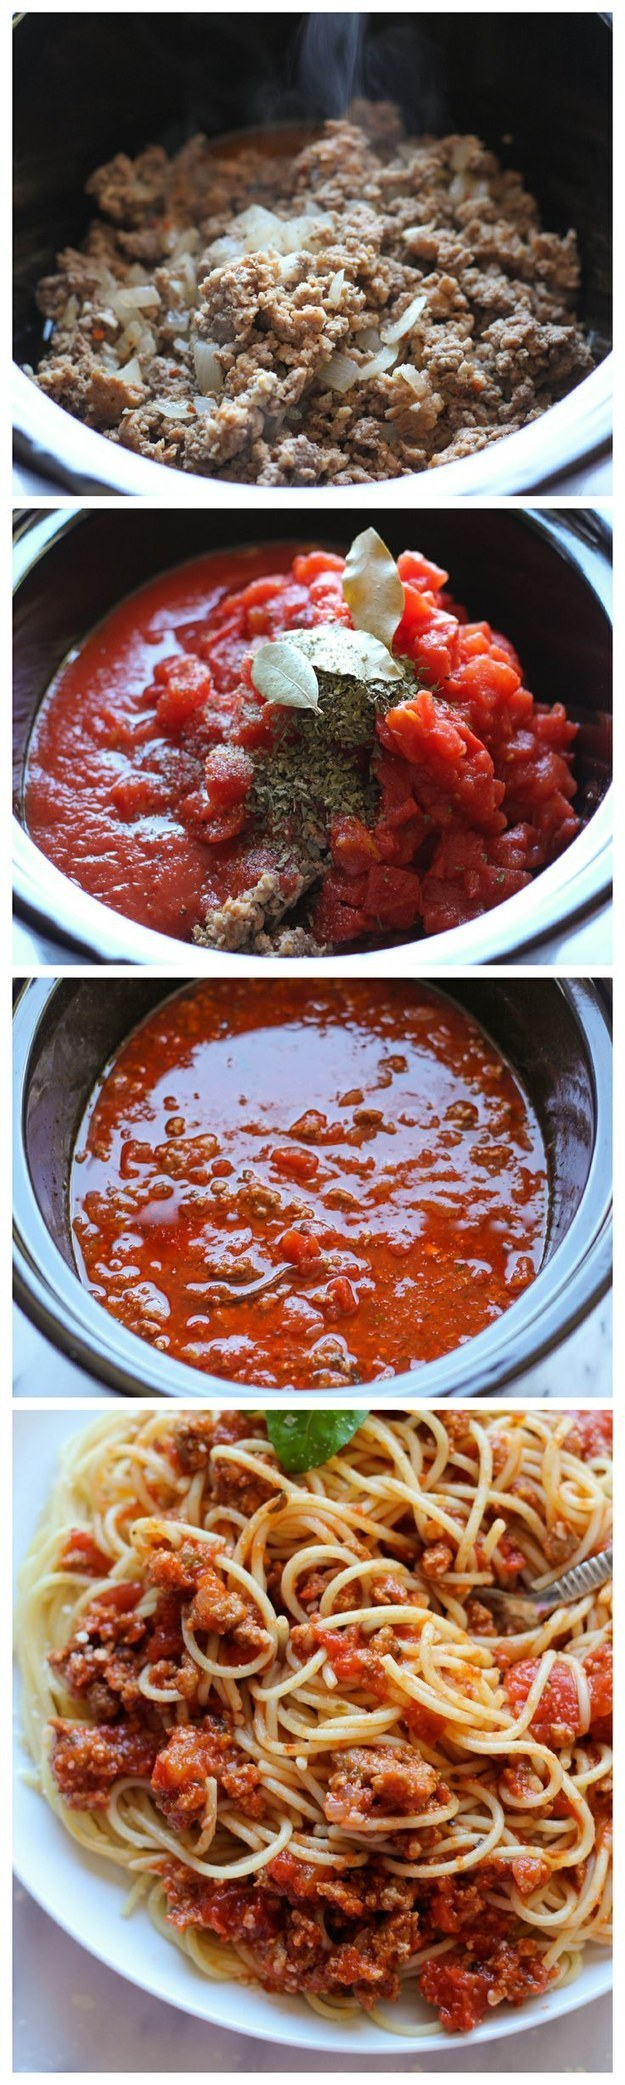 15 Best Recipes to Get Red Sauce | Pretty Designs